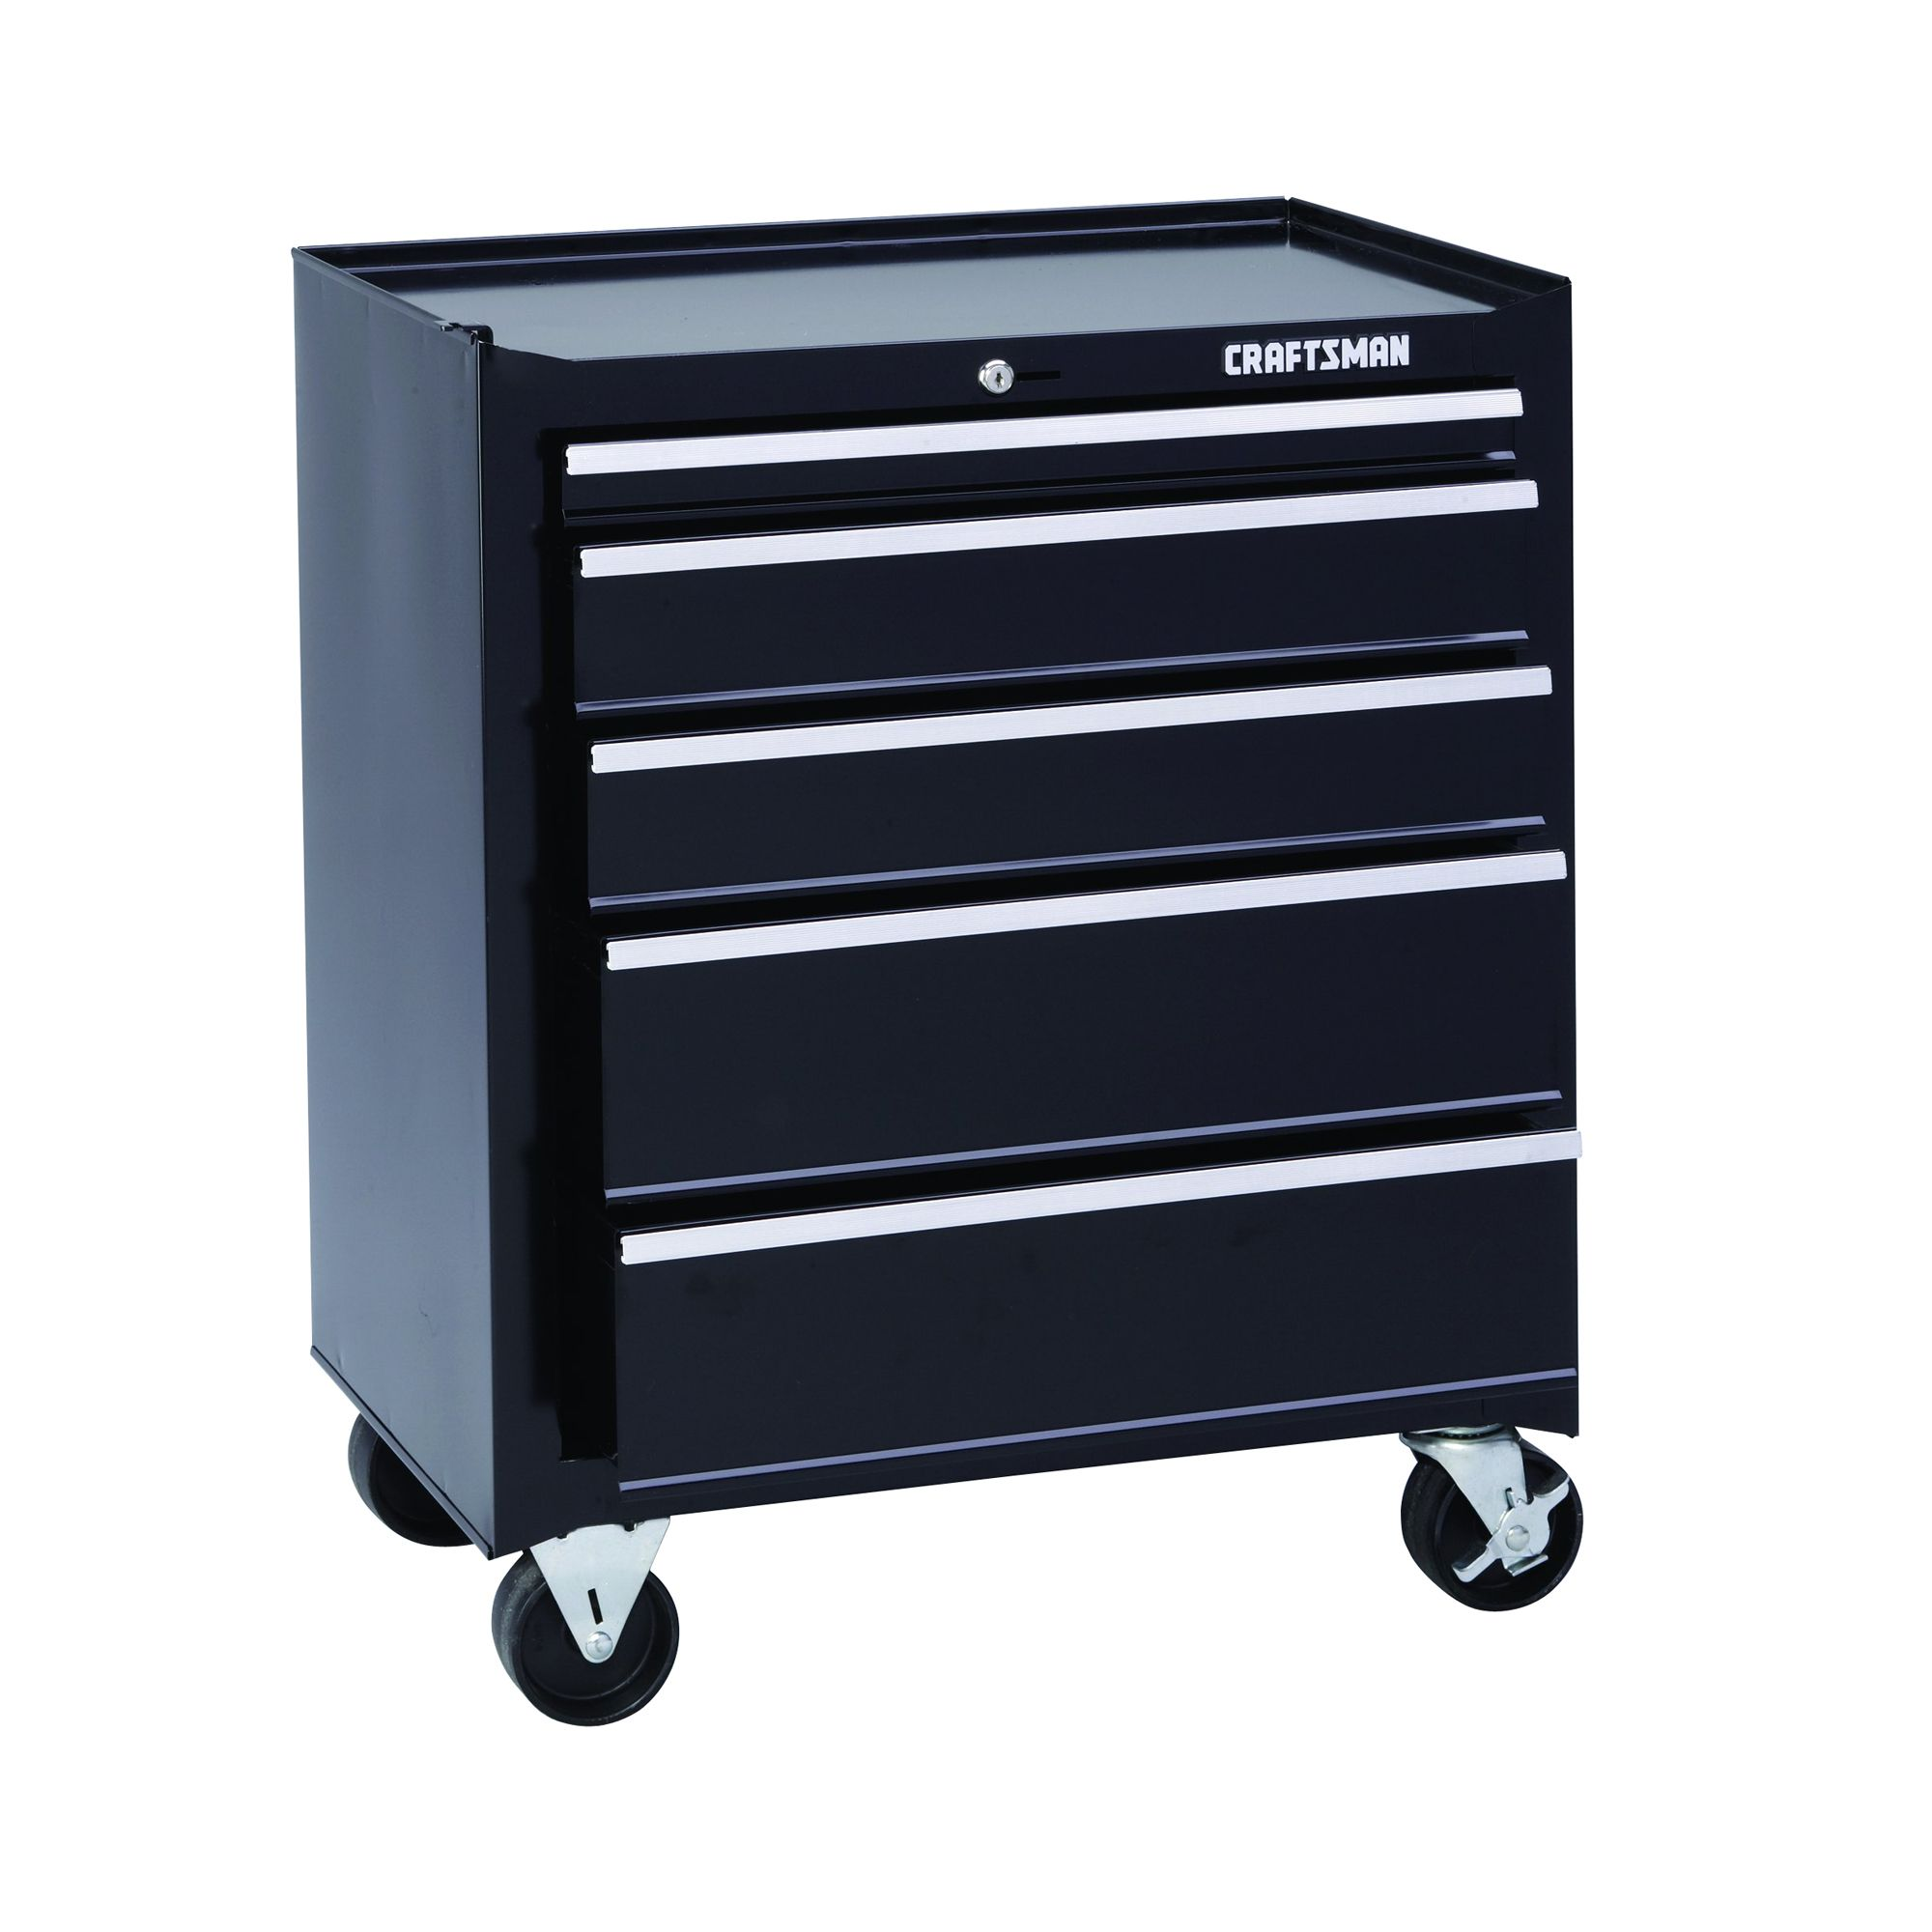 "Craftsman 26"""" Wide 5-Drawer Basic Bottom Chest - Black"